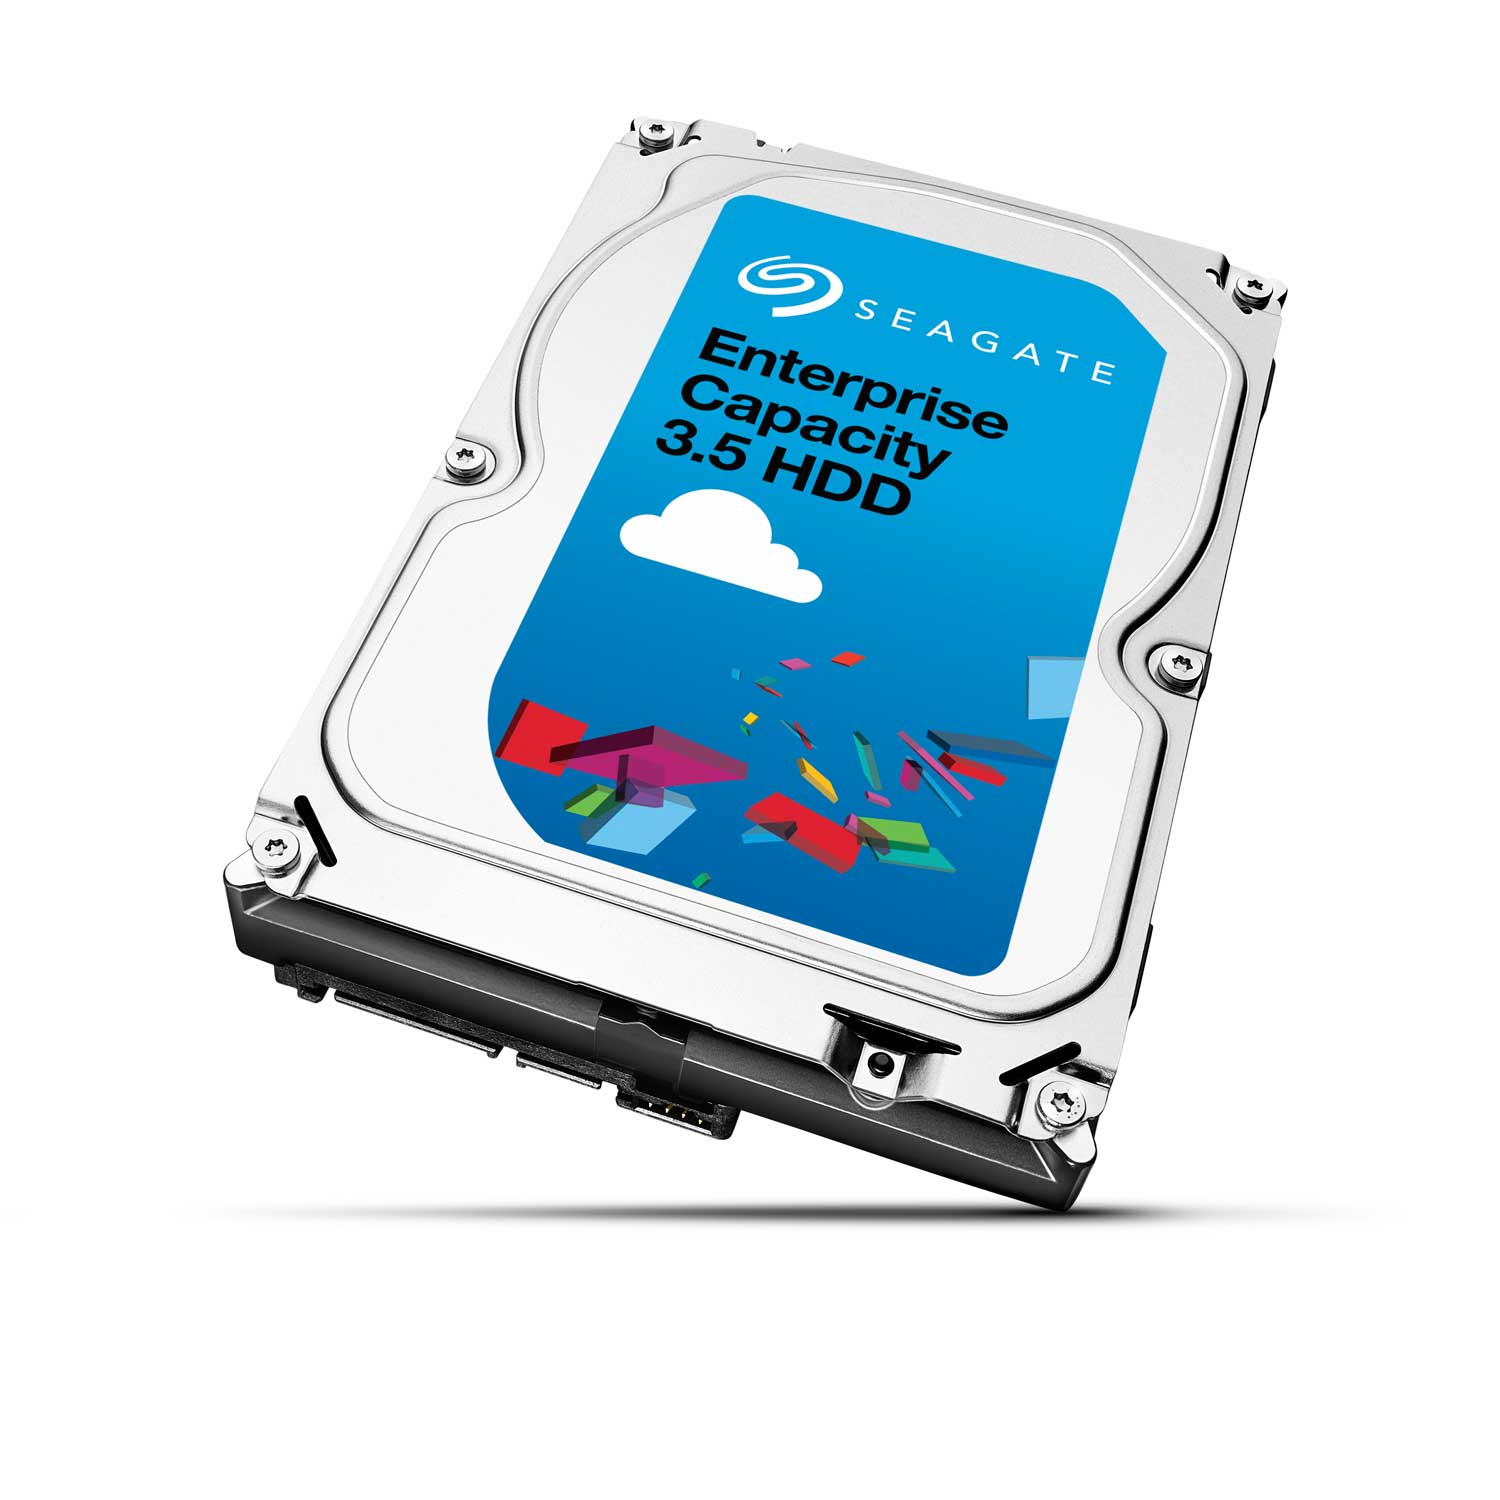 "Disque dur interne Seagate Constellation ES 4 To SATA 6Gb/s Disque dur serveur 3.5"" 4 To 7200 RPM 128 Mo SATA 6Gb/s (bulk)"